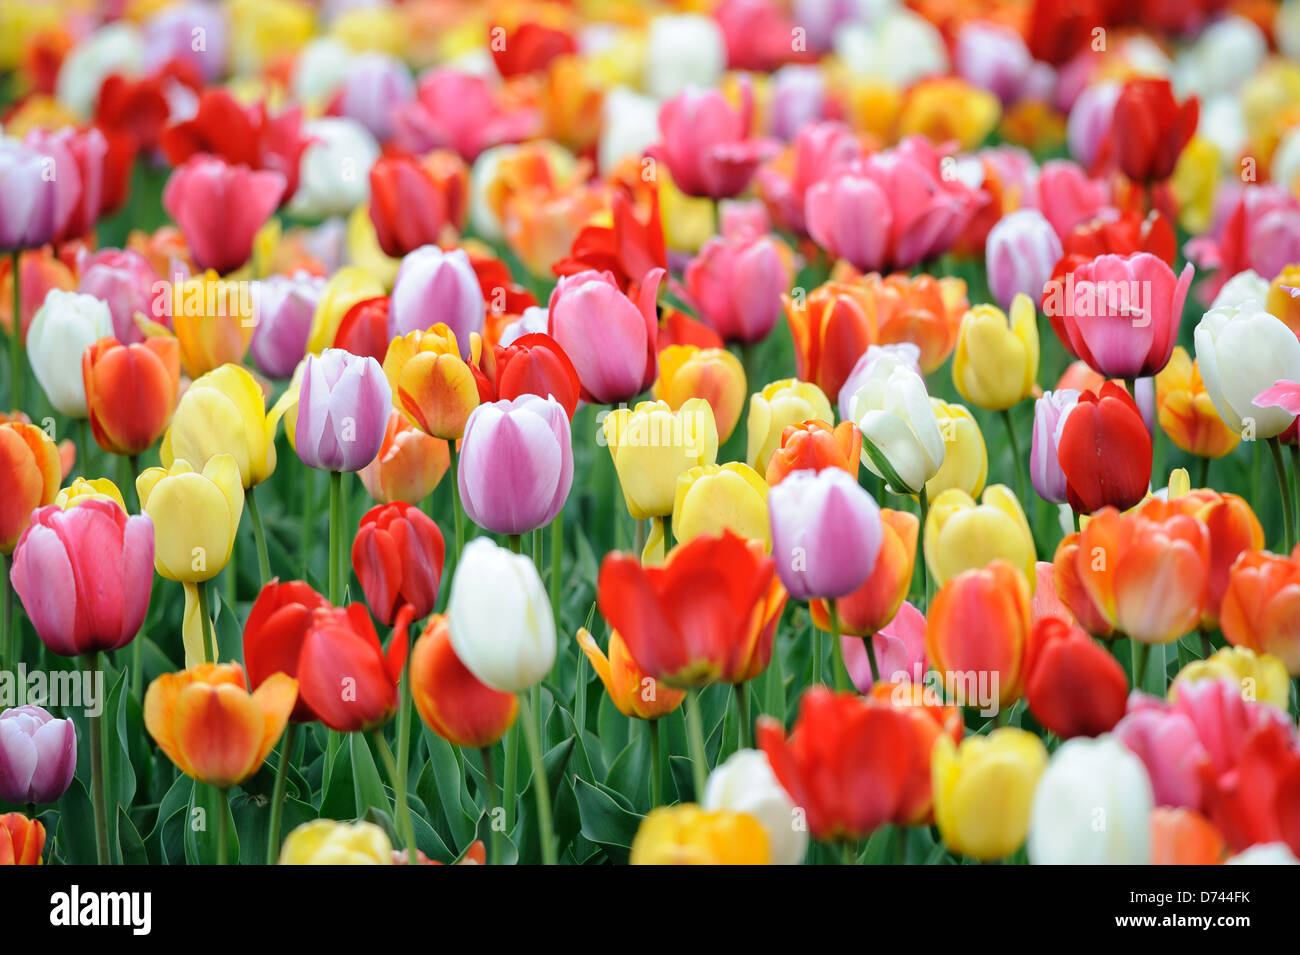 Field of Tulips - Stock Image